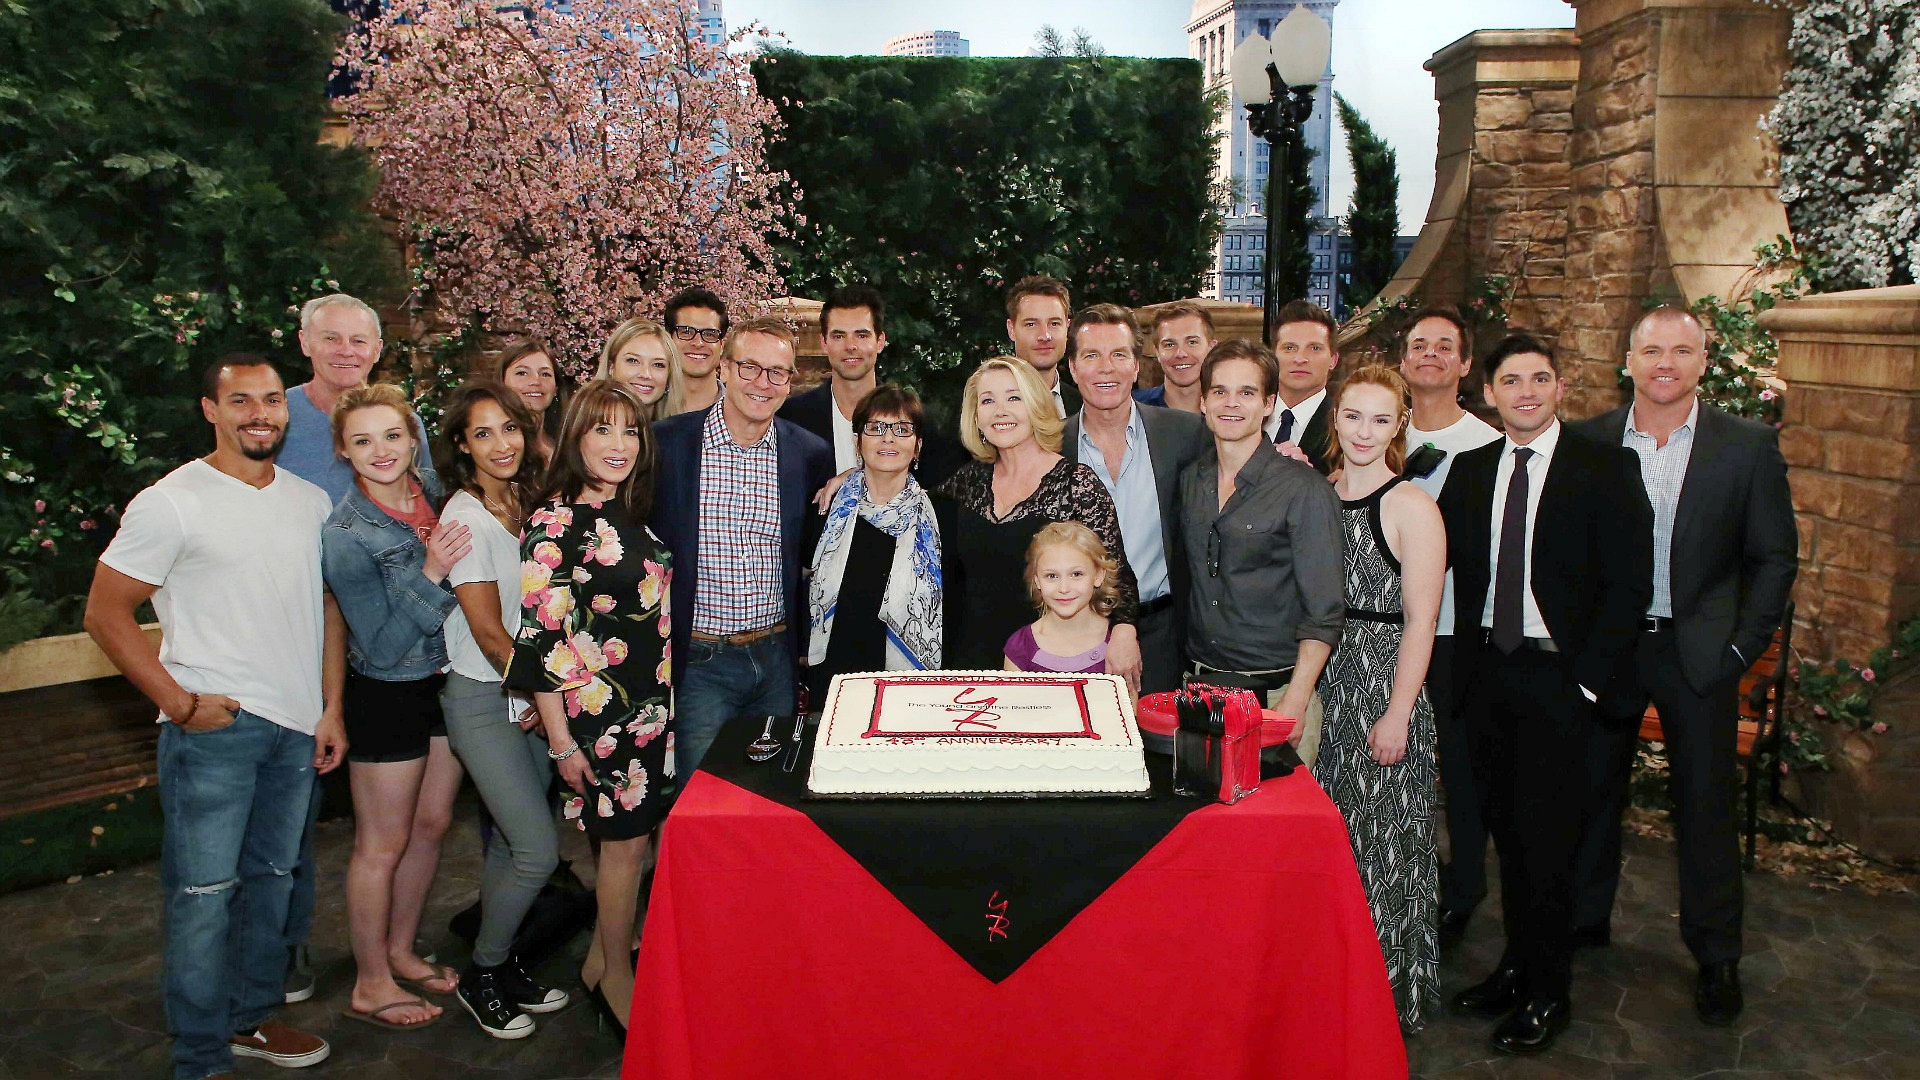 Flash-forward to 2016: The cast honors 43 incredible years!